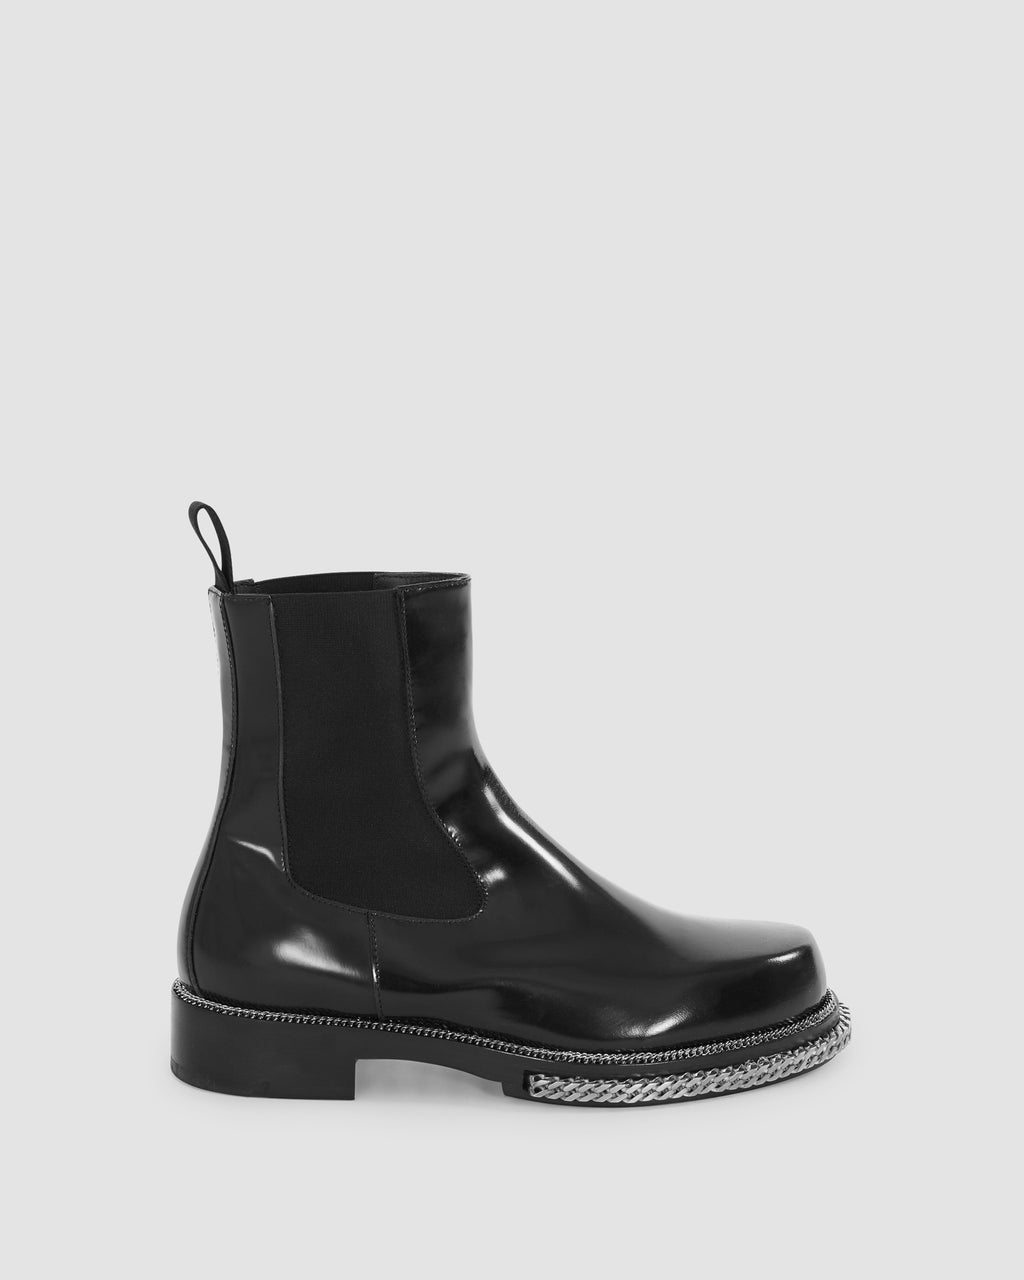 1017 ALYX 9SM | CHELSEA BOOT WITH CHAIN SOLE EXCLUSIVE MADE TO ORDER | Shoe | FW20 PRE-ORDER